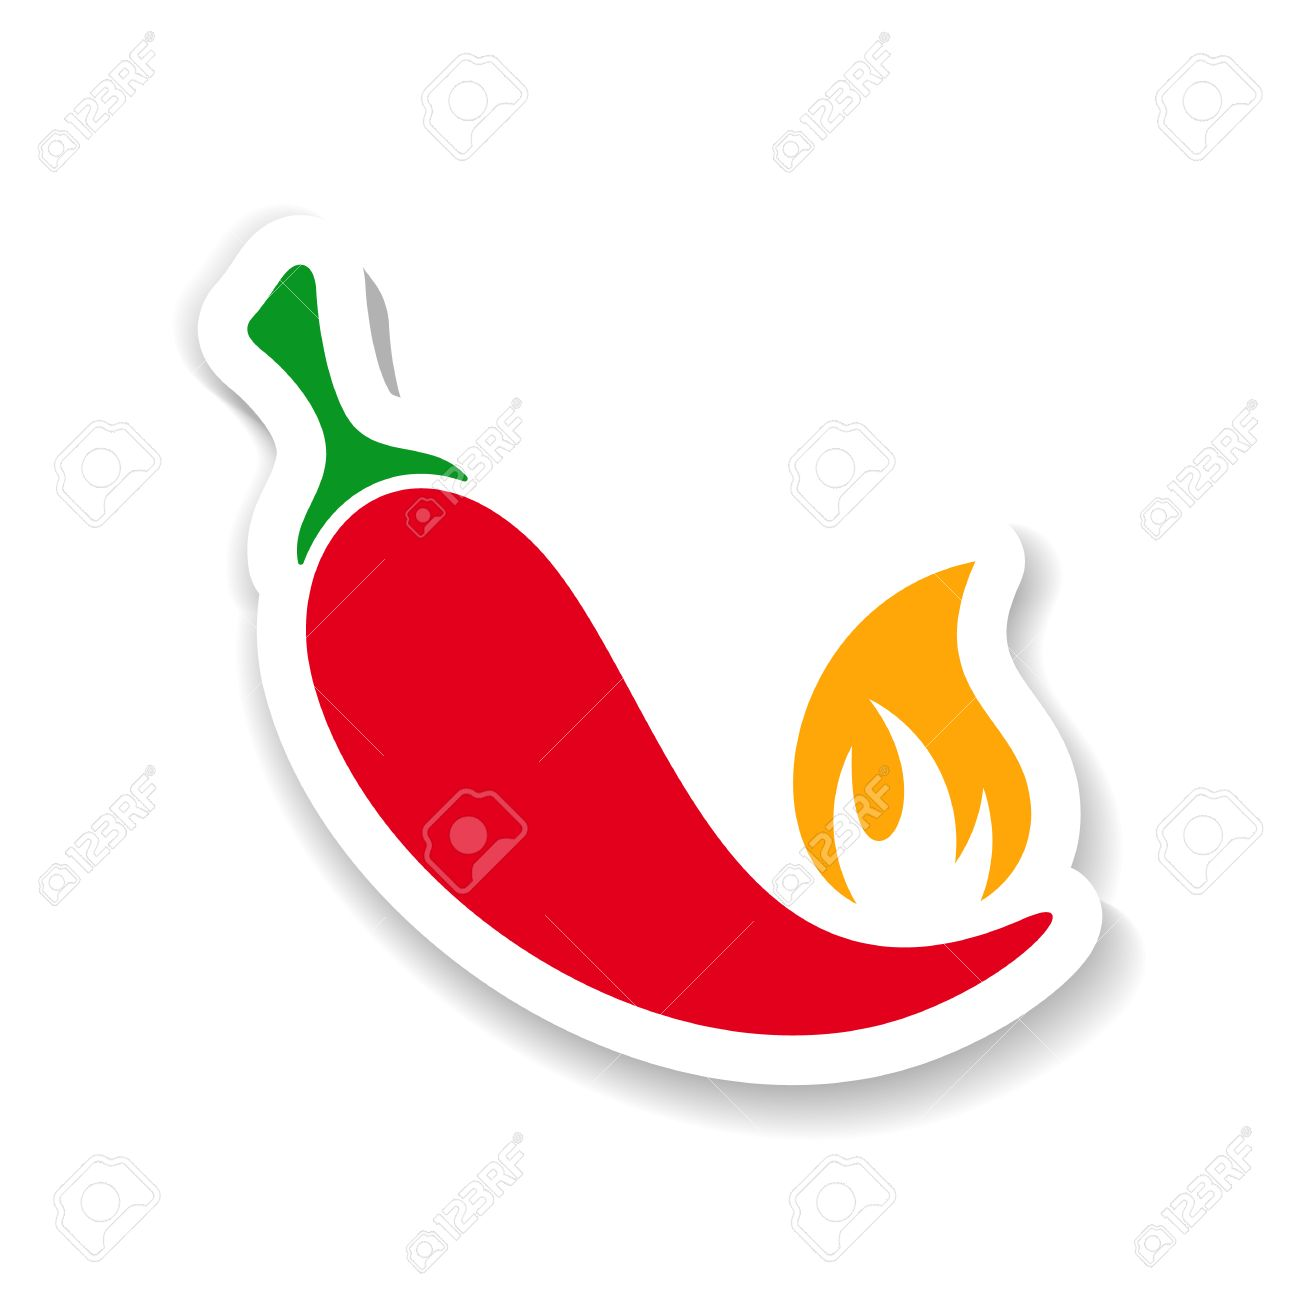 vector red hot chili pepper with flame sticker royalty free cliparts rh 123rf com red chili pepper clipart free chili pepper clip art borders free